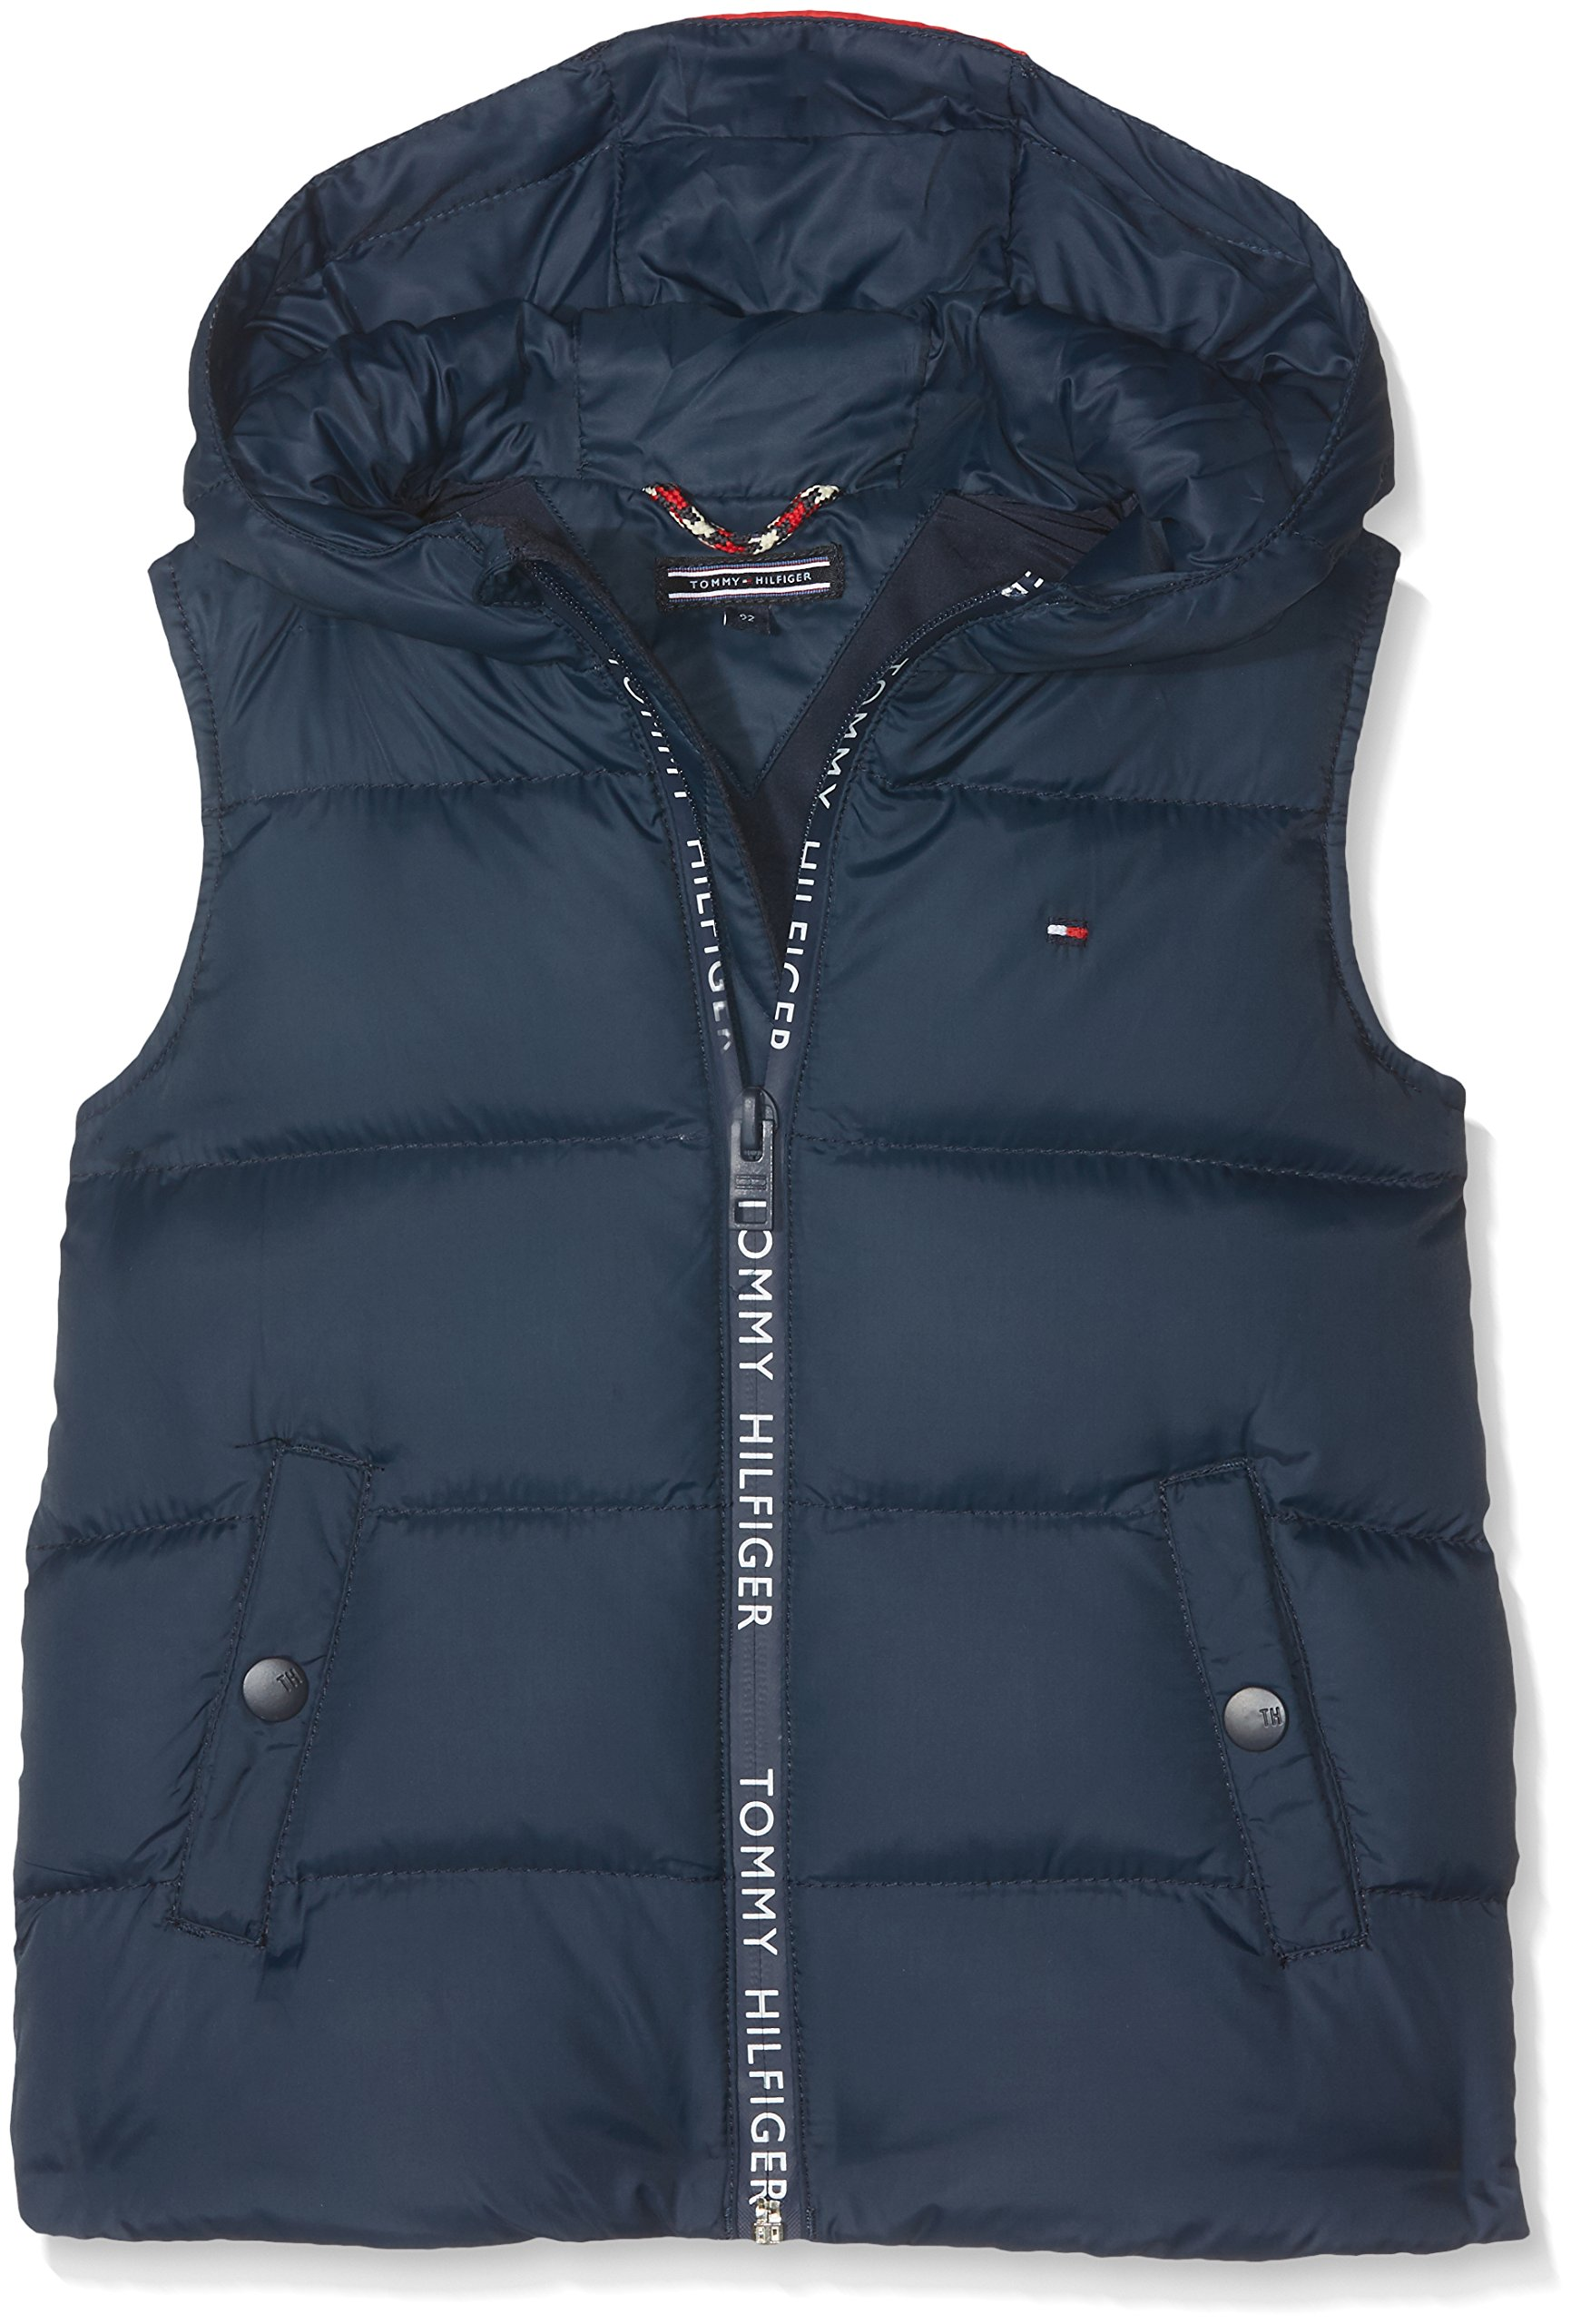 Tommy Hilfiger Boys Ame Thkb Down Jacket